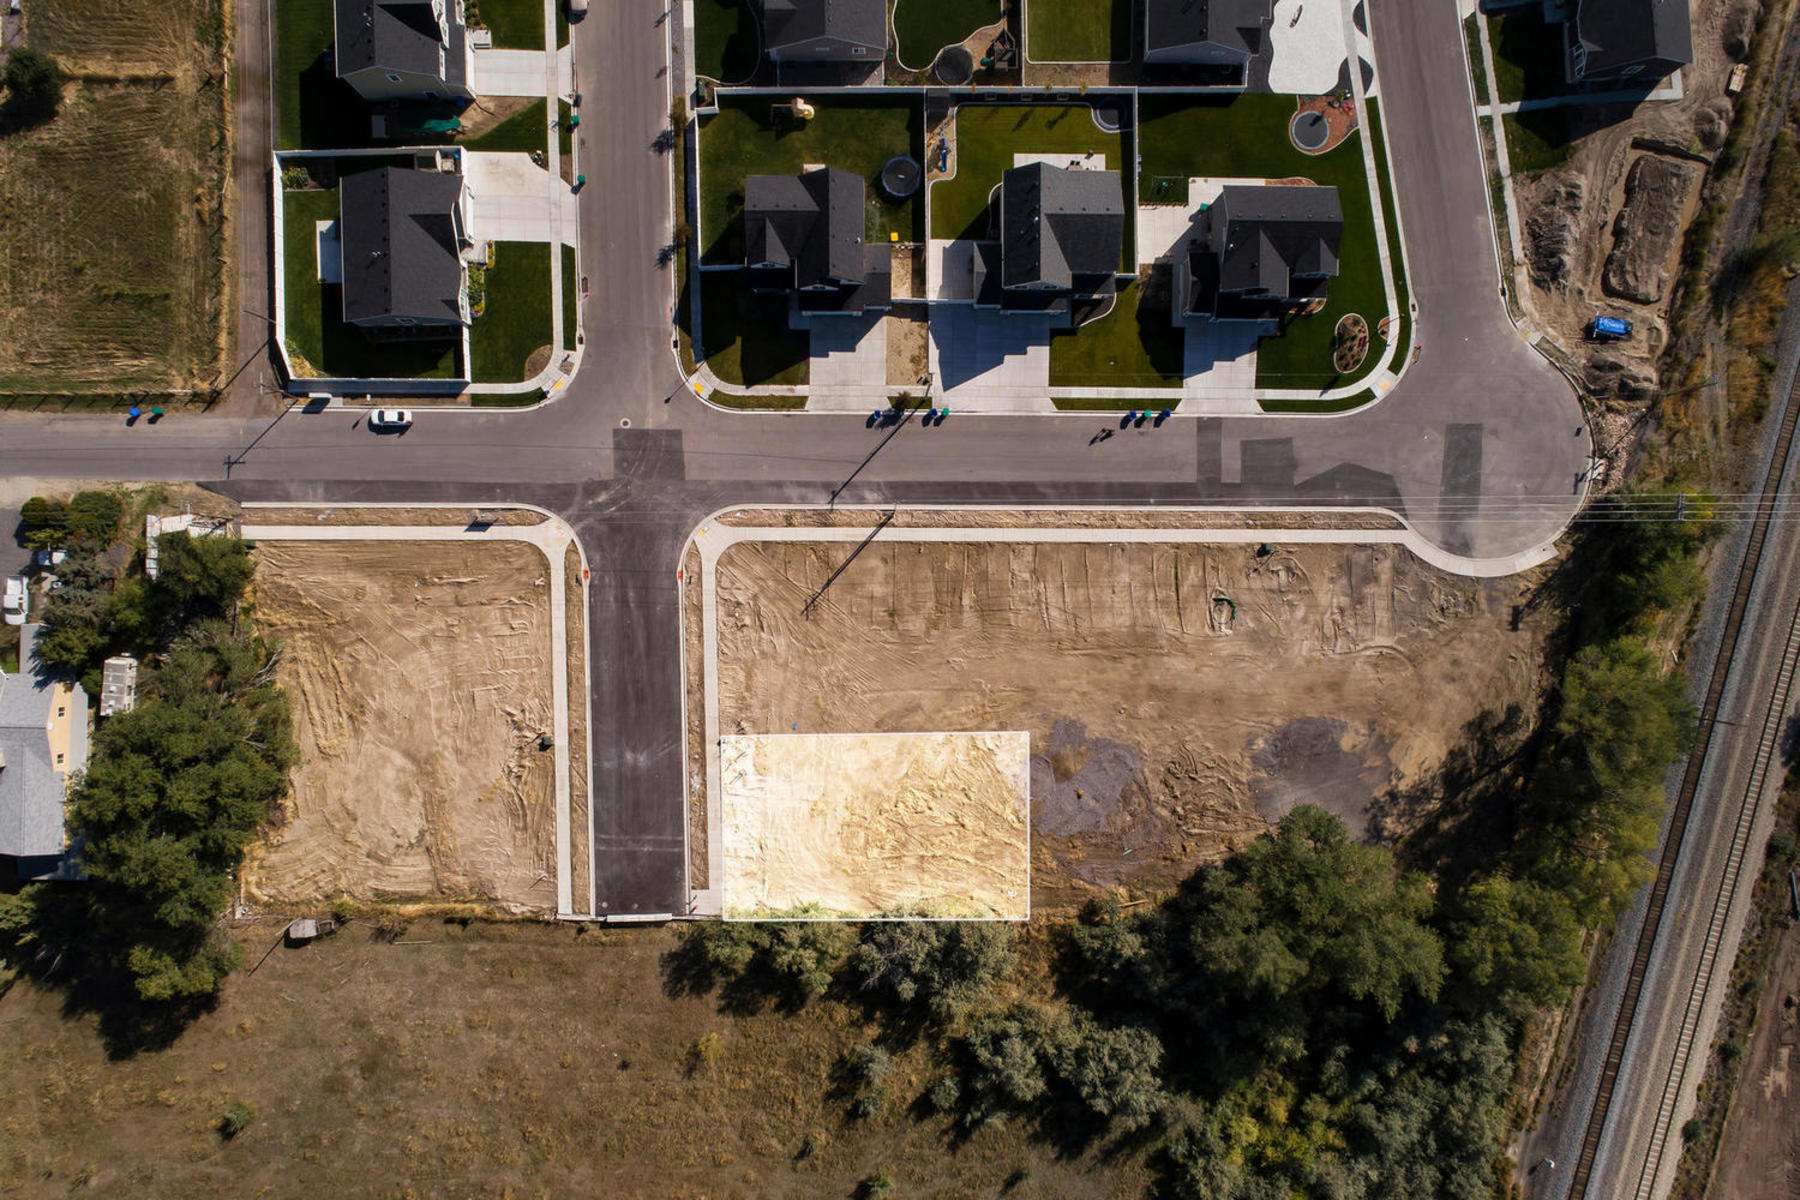 Land for Sale at New Development in Lehi 283 East 570 South Lot 2, Lehi, Utah 84043 United States